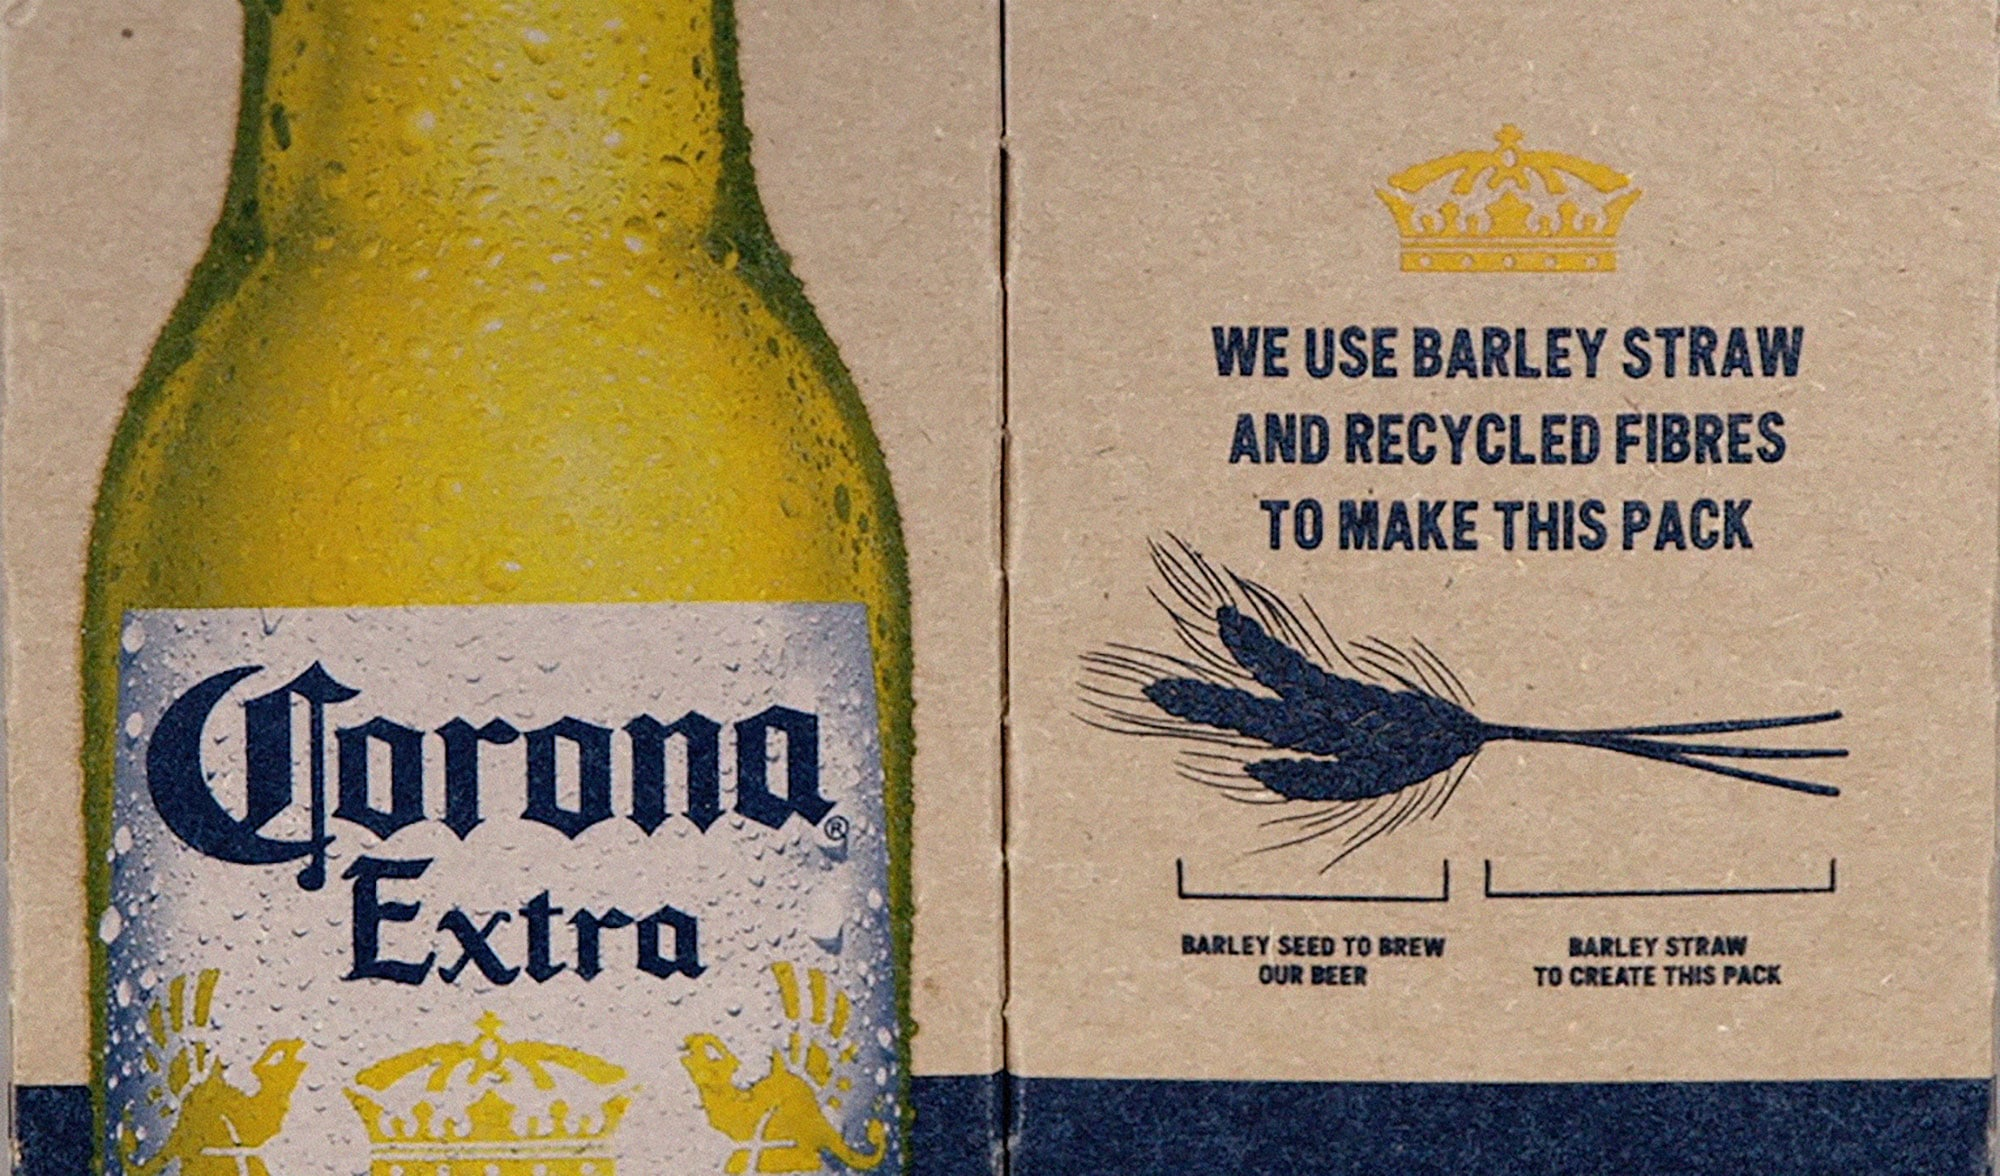 A smart graphic quickly communicates the eco benefits of using barley straw to create the packaging.